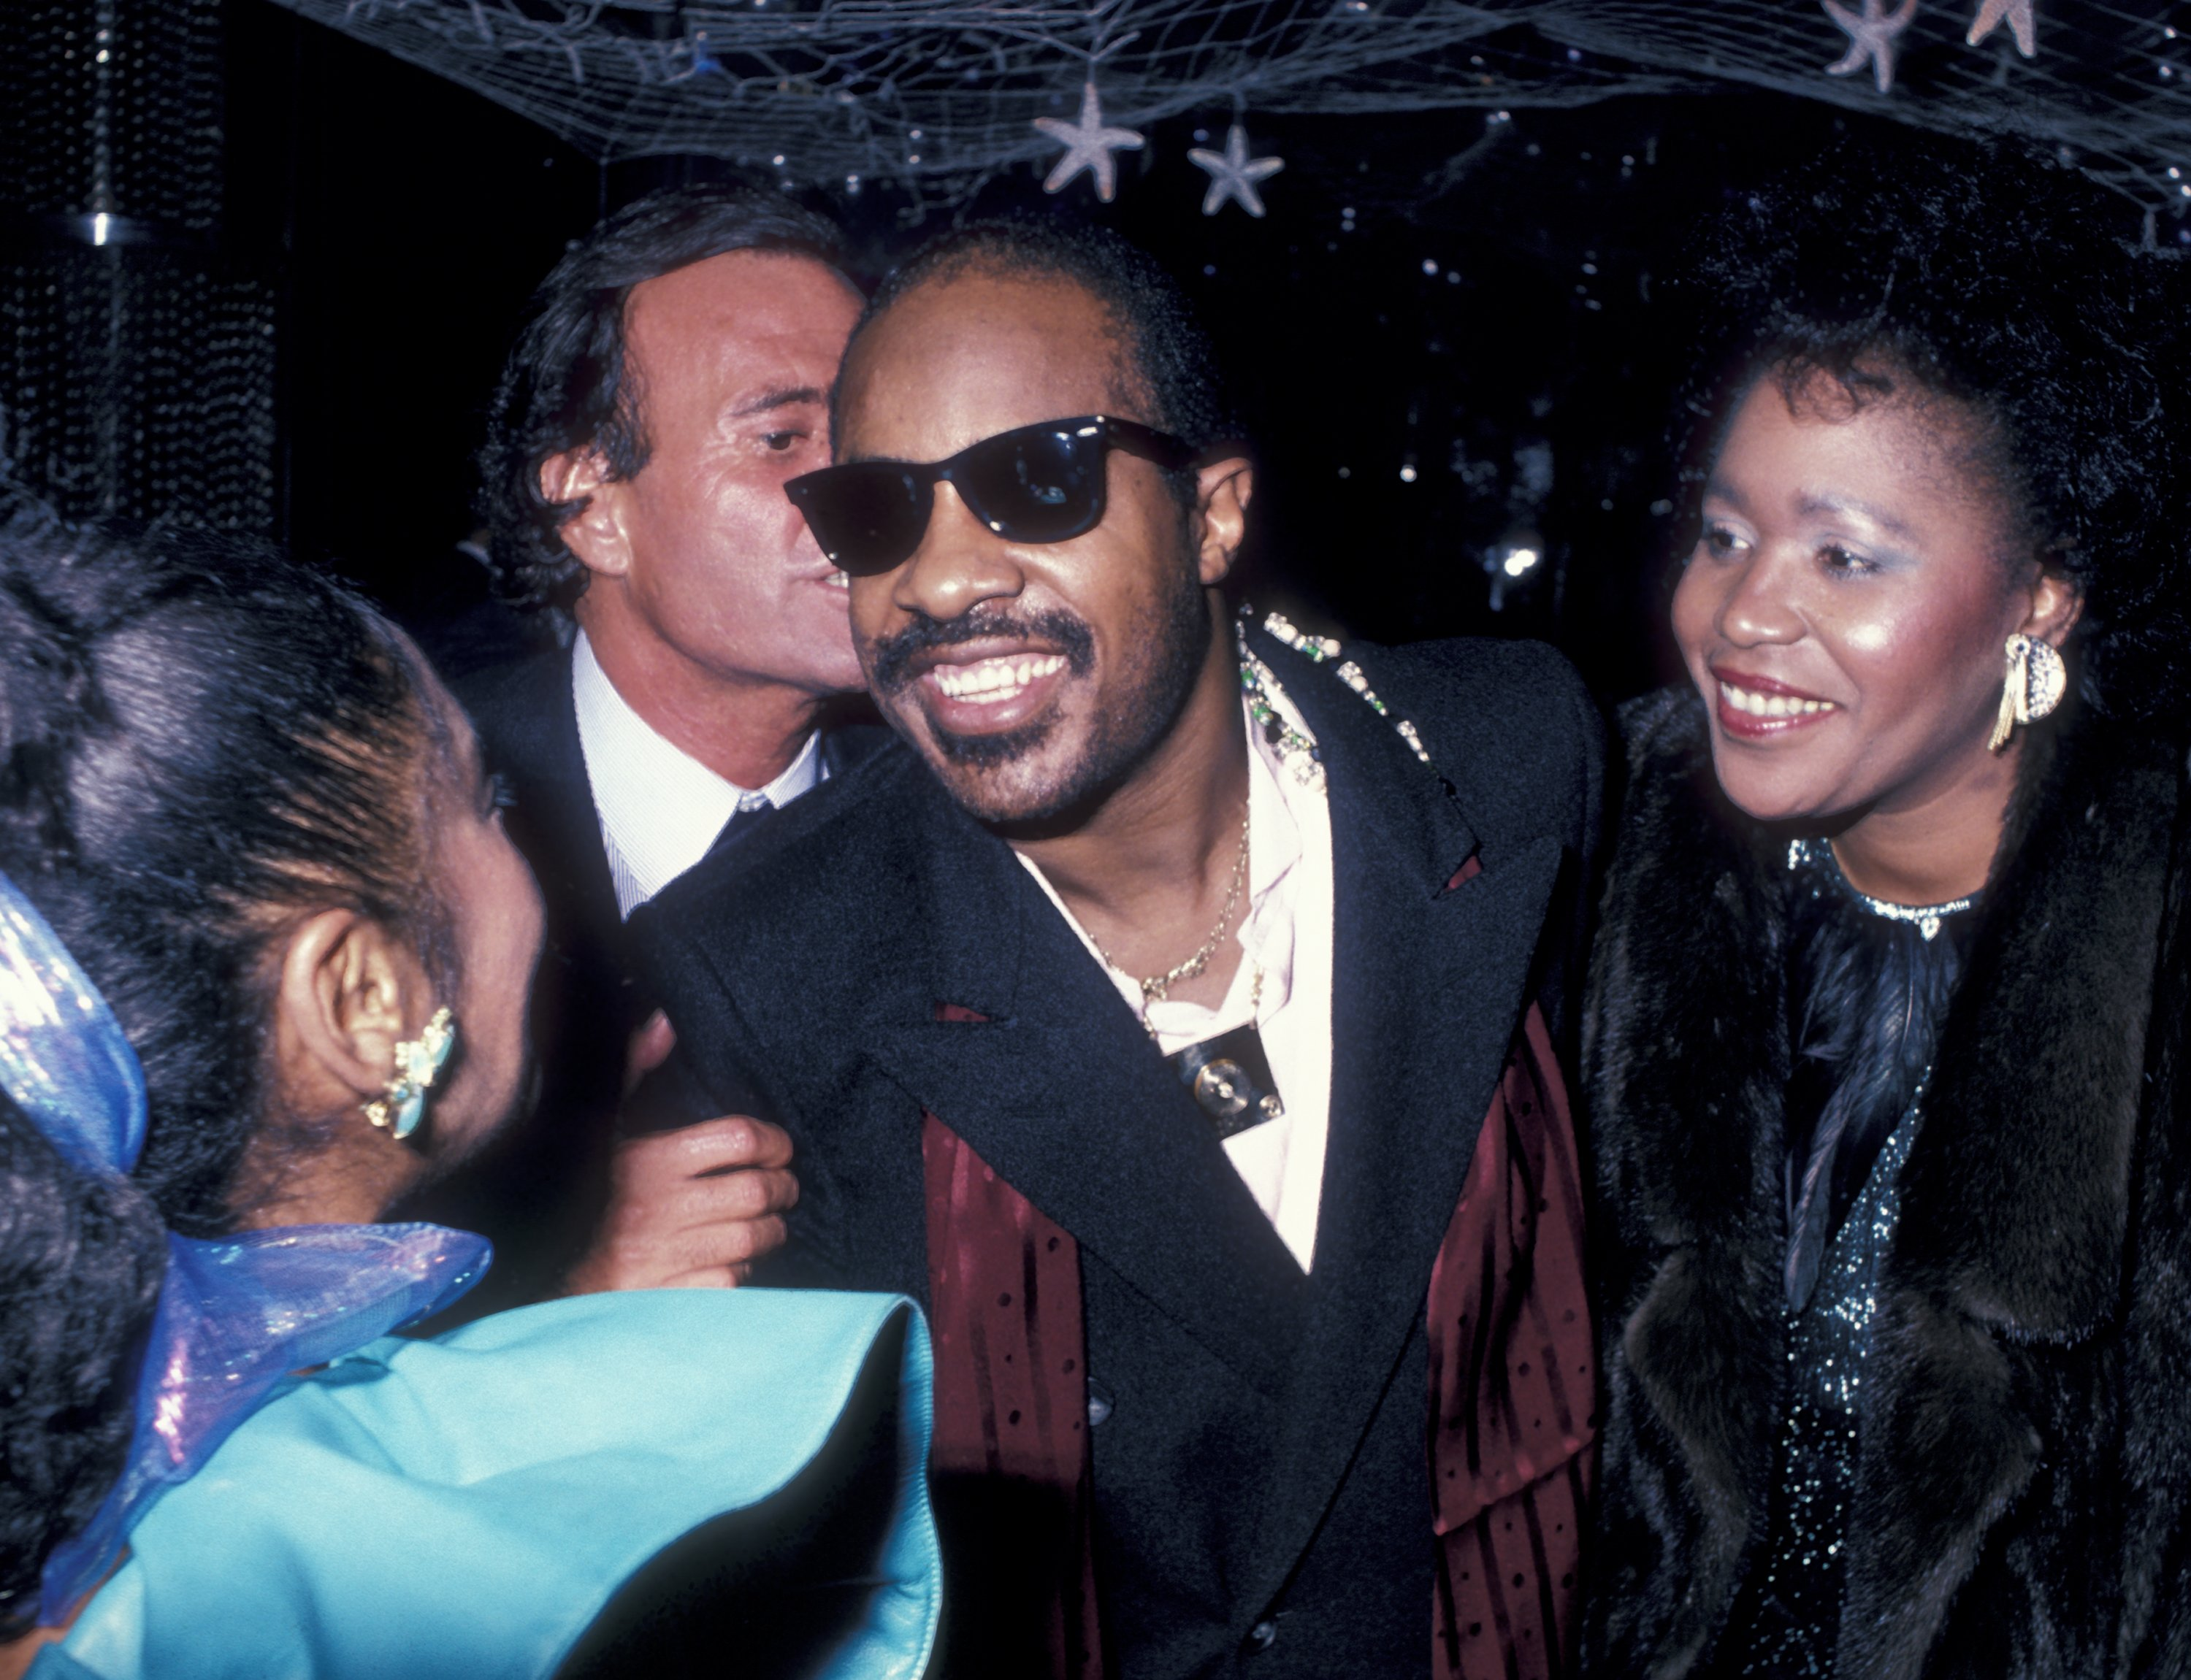 Stevie Wonder and Yolanda Simmons attend a New Year's Eve party at Regine's in New York City on December 31, 1985 | Photo Getty Images